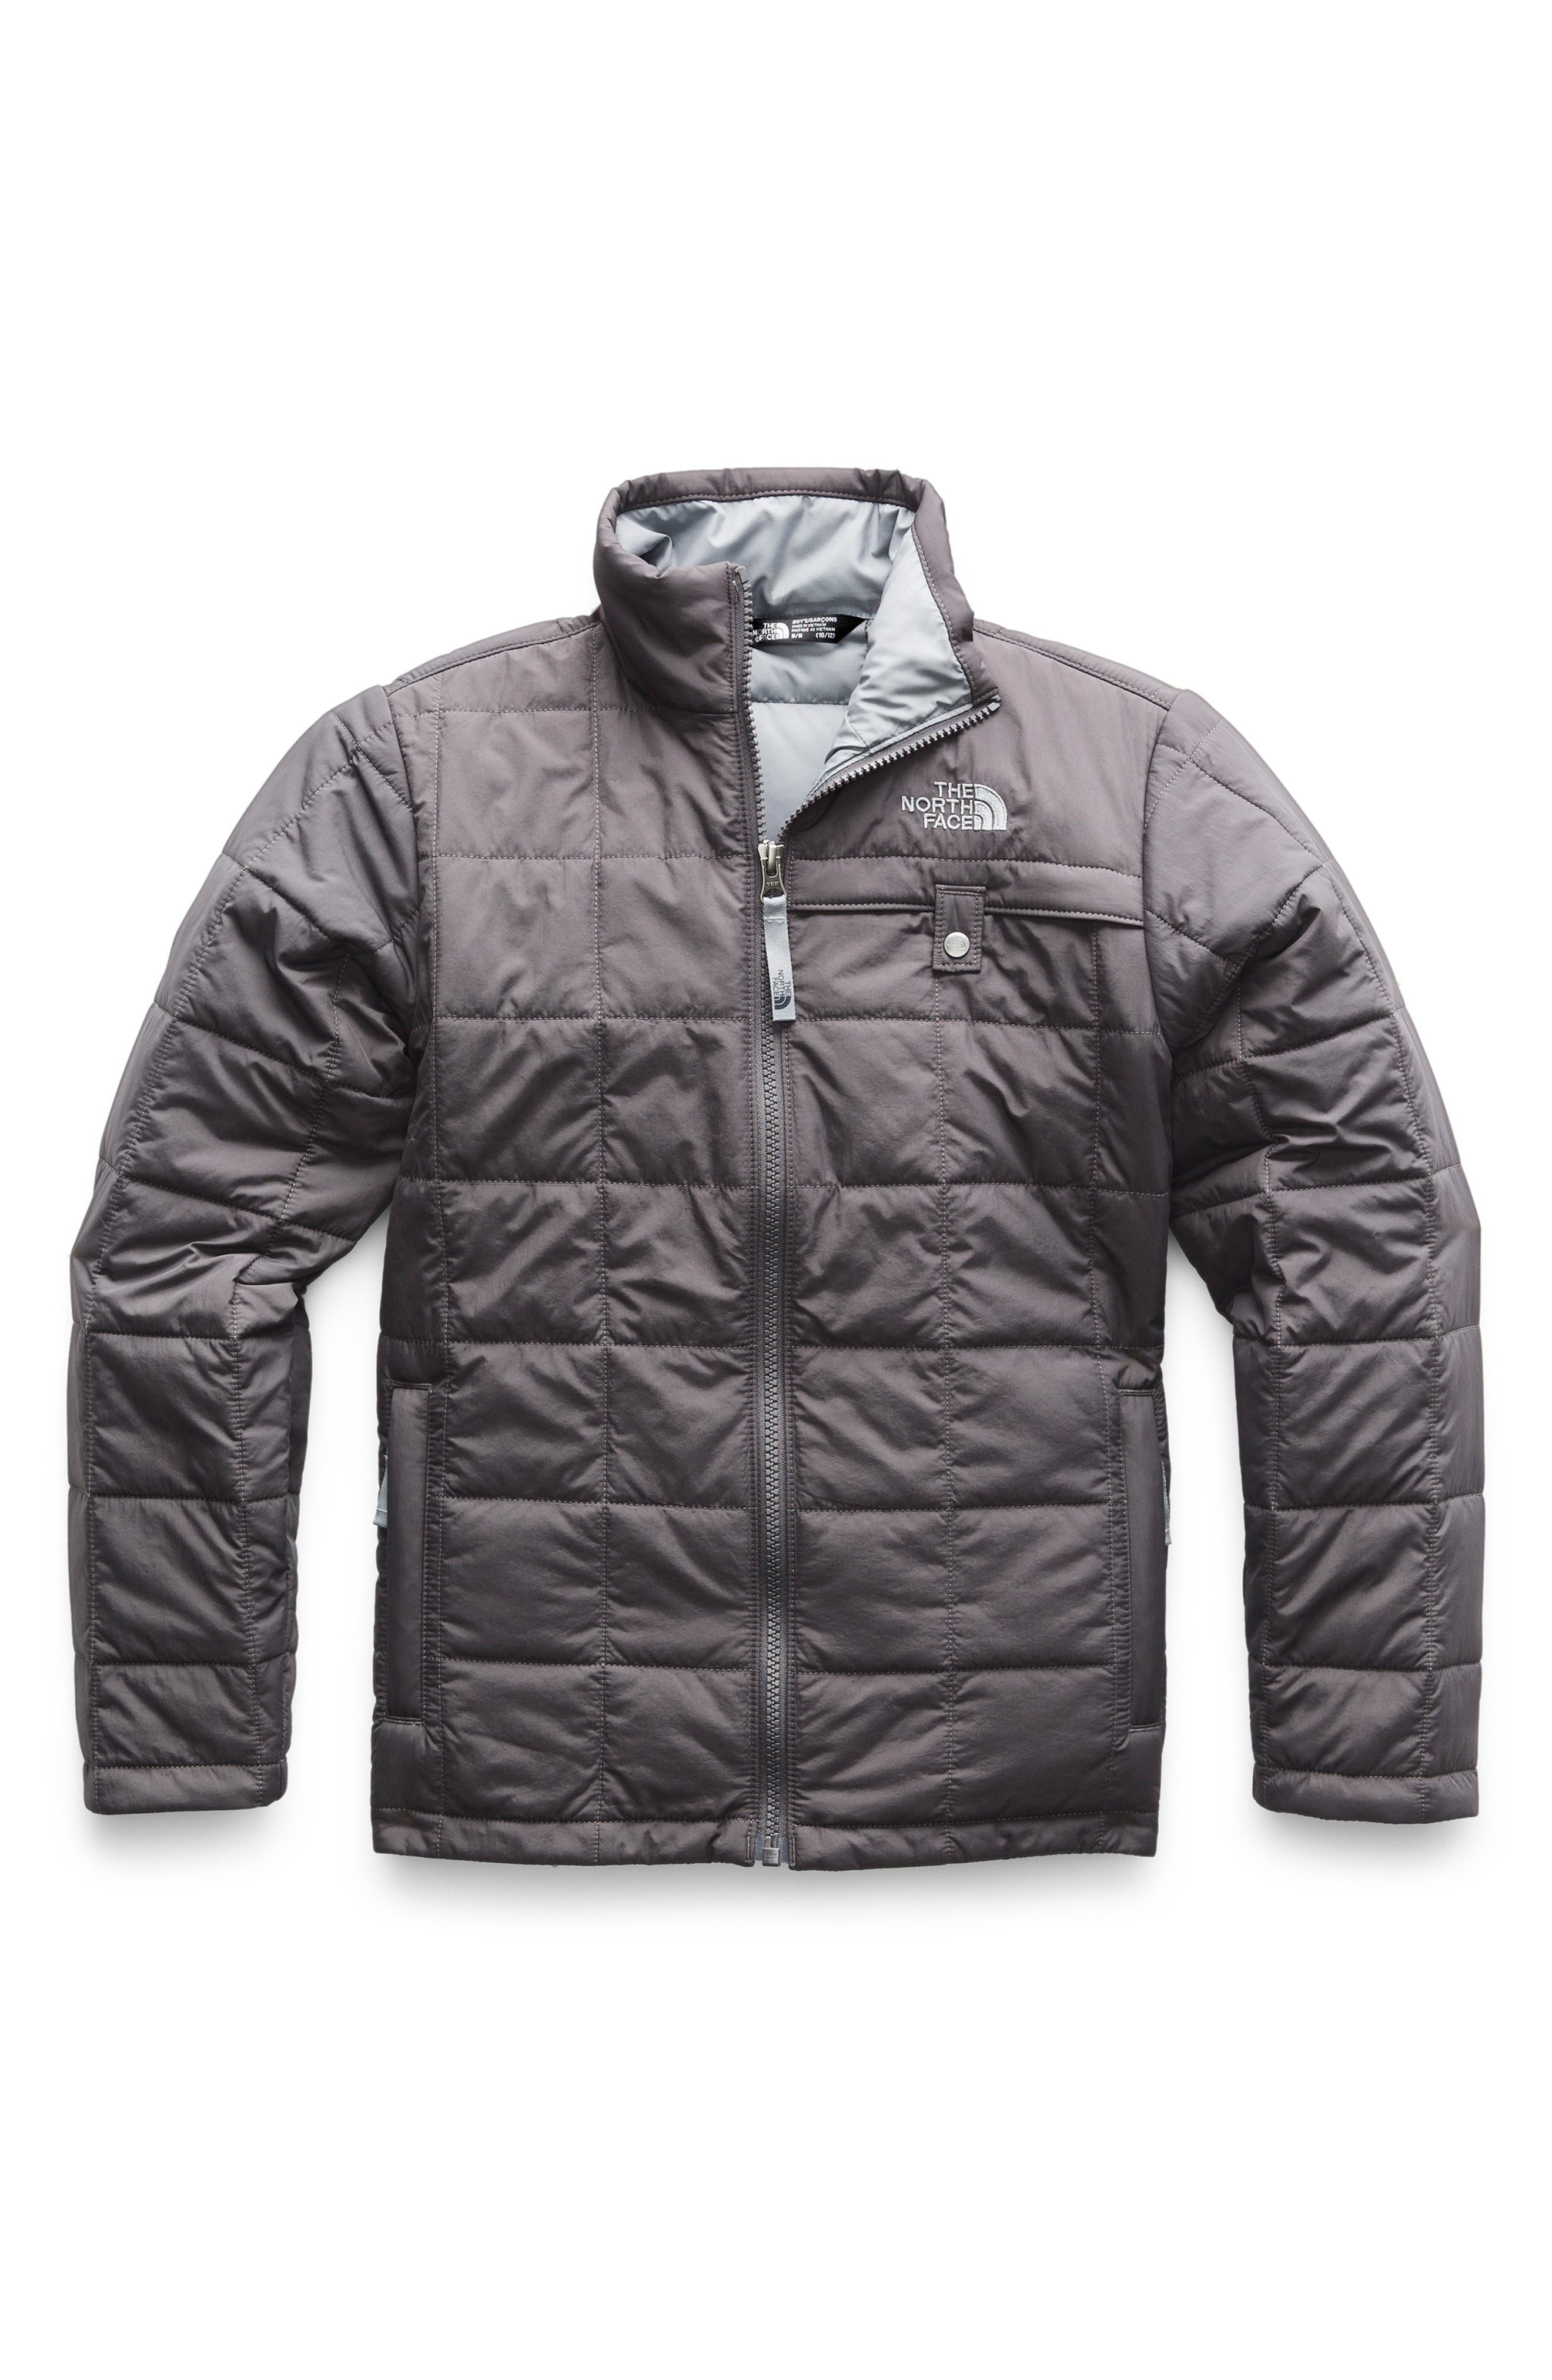 THE NORTH FACE Harway Heatseaker<sup>™</sup> Jacket, Main, color, 022